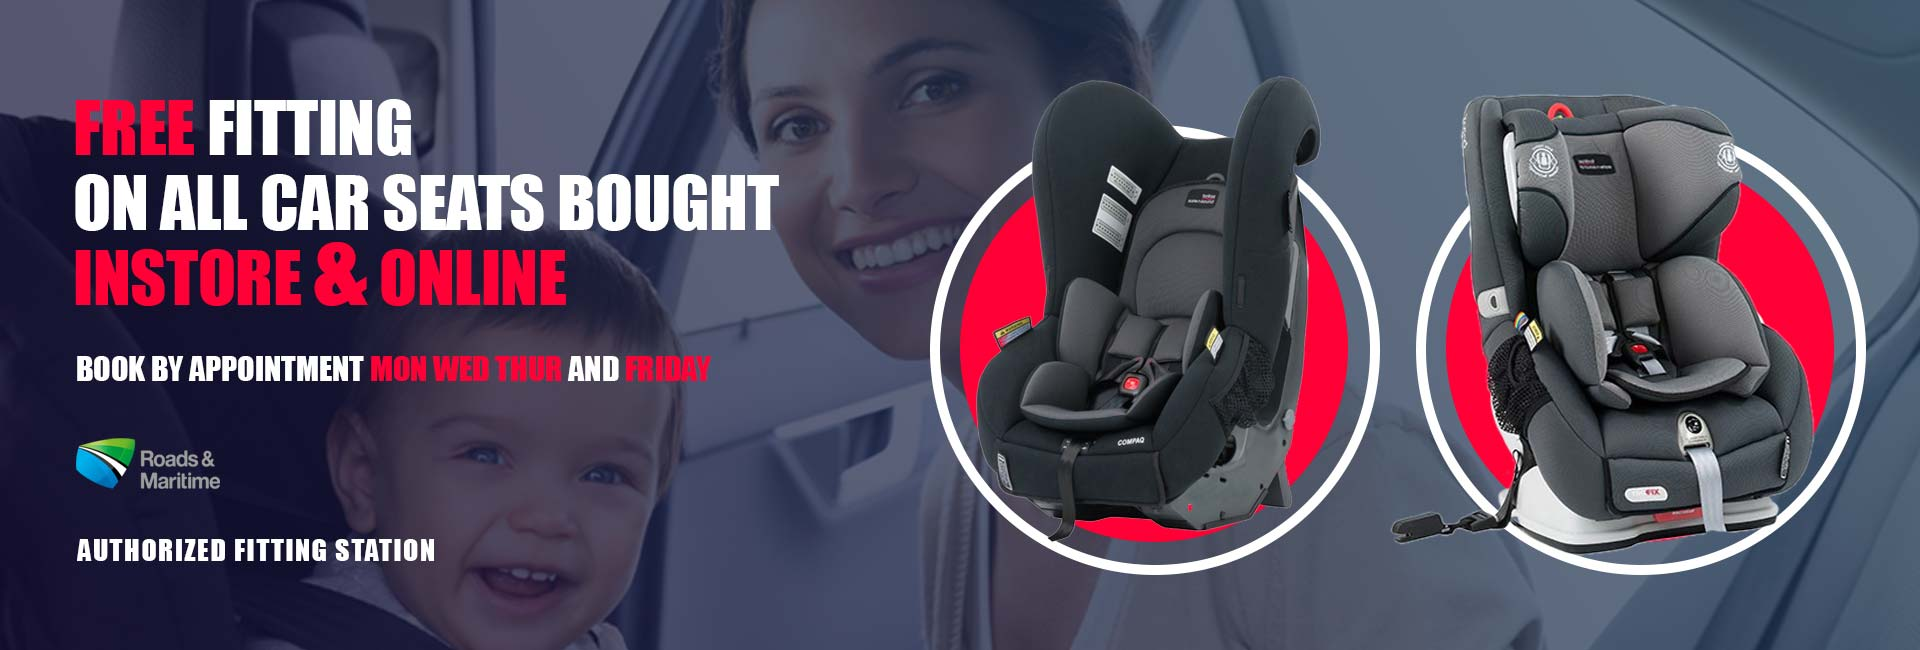 free fitting on all car seats bought instore and online at baby barn discounts